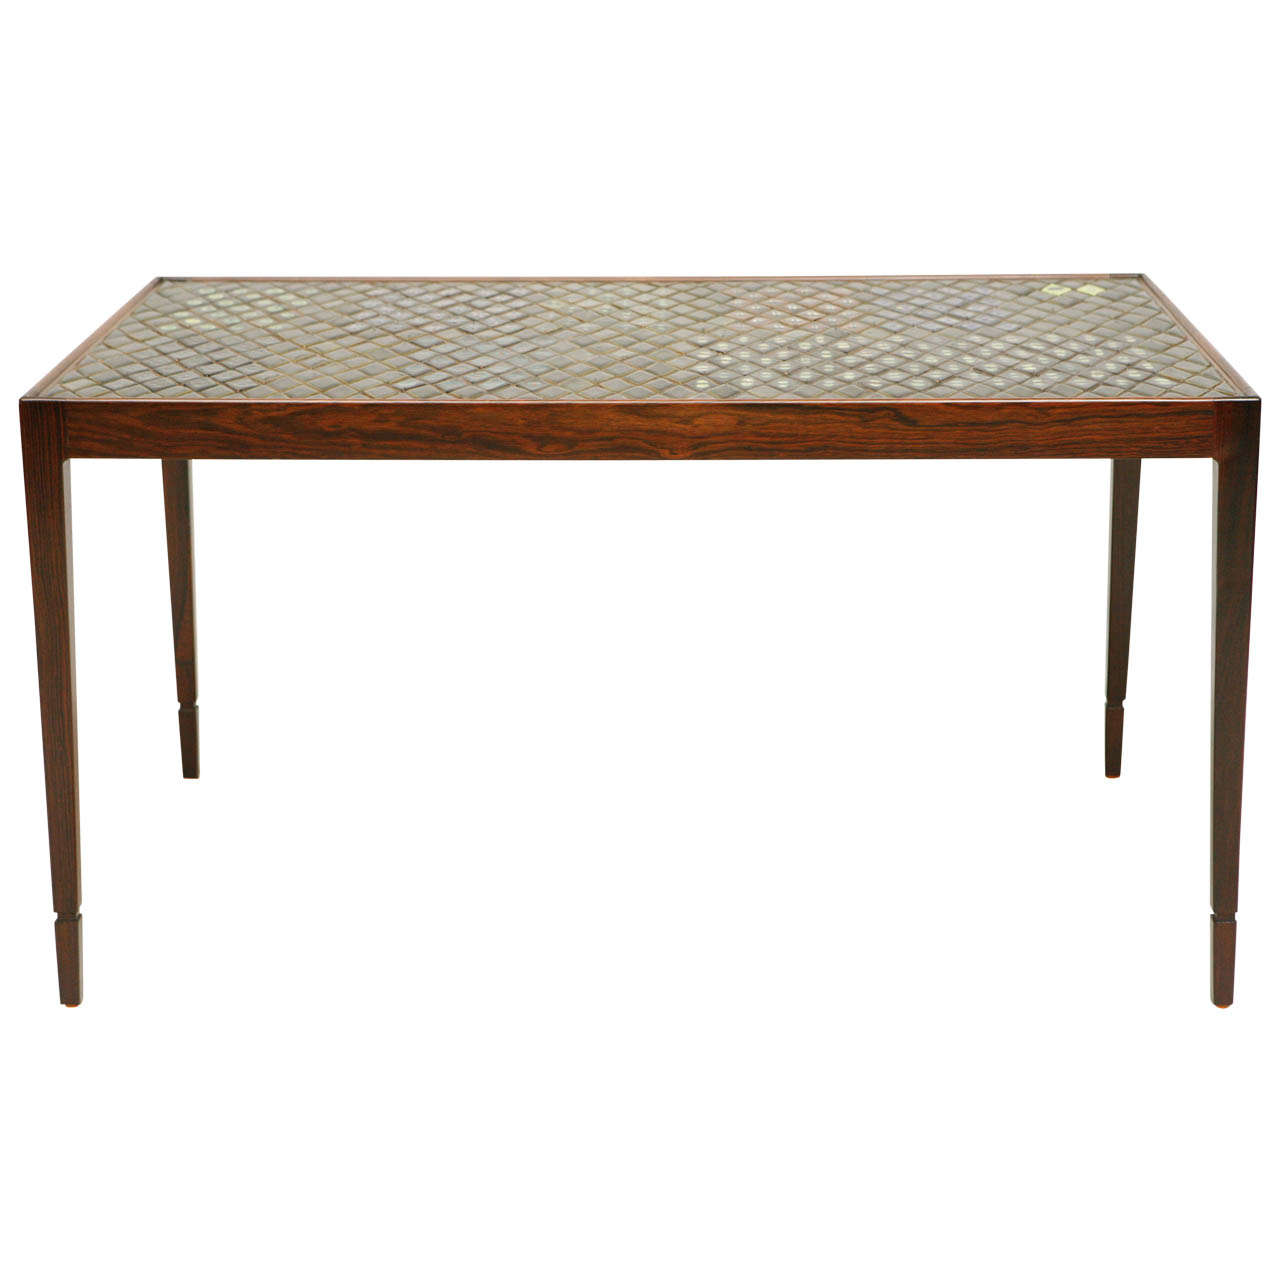 Unusual bjorn wiinblad coffee table for sale at 1stdibs for Unusual tables